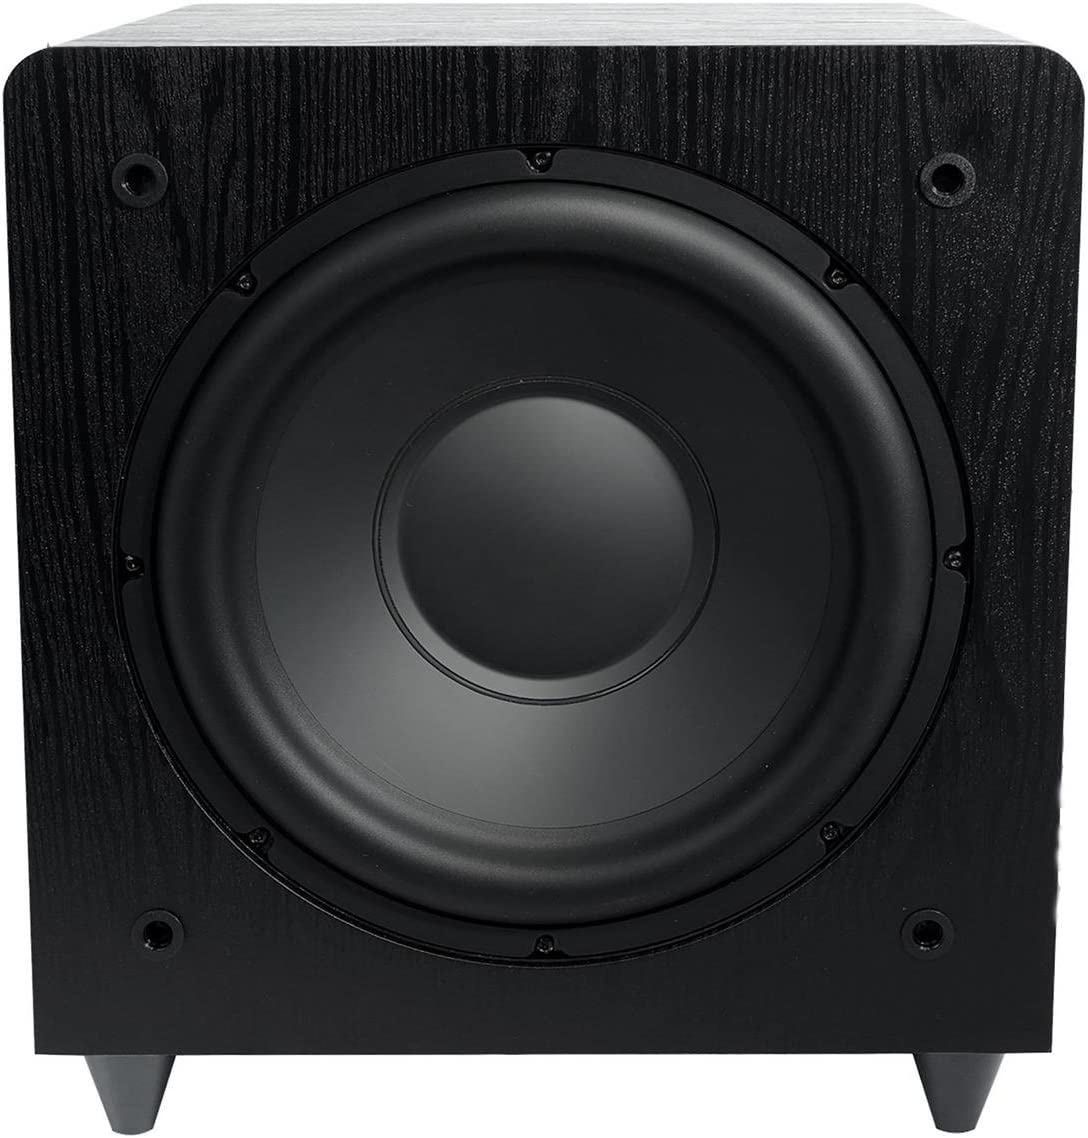 Sunfire SDS12 12 600W Black Home Theater Sub Powered Subwoofer Sound System